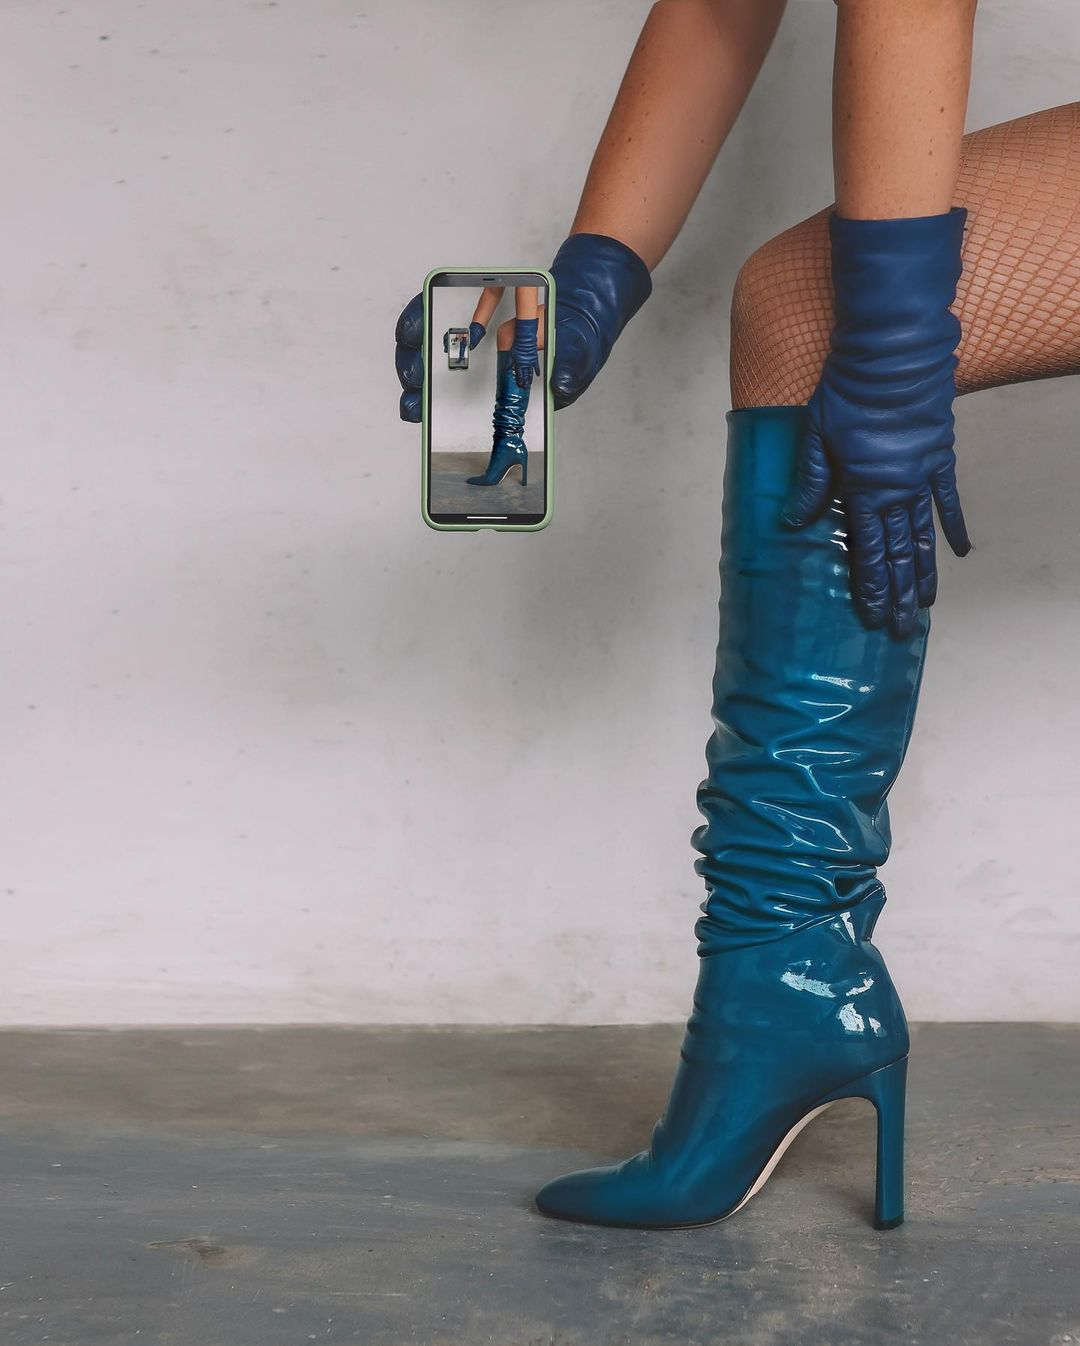 Legacy Kneehigh boots, Patent Leather by Tamara Mellon